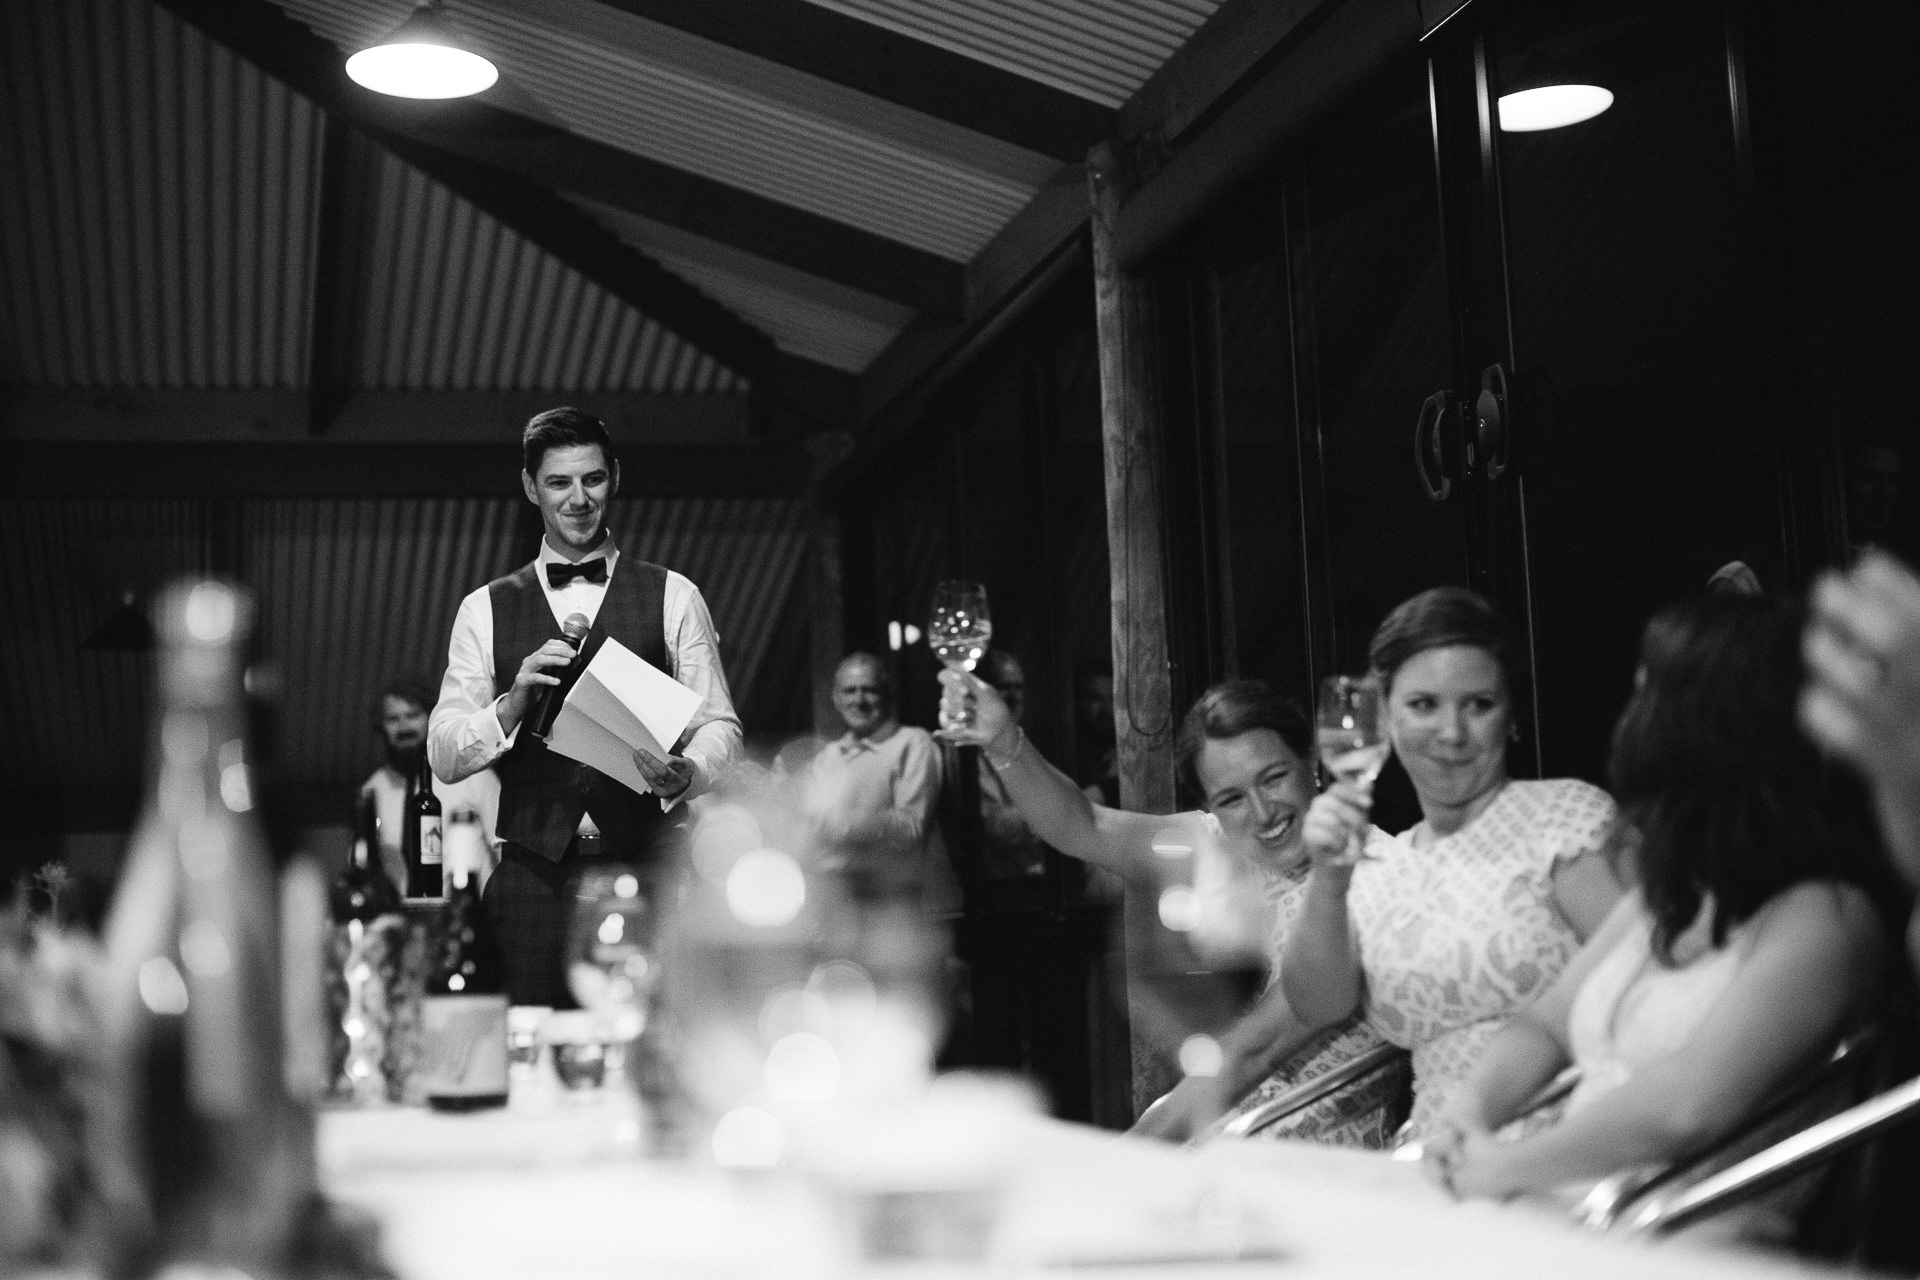 Groom making speech at wedding reception at Longview winery wedding in Macclesfield in the Adelaide Hills